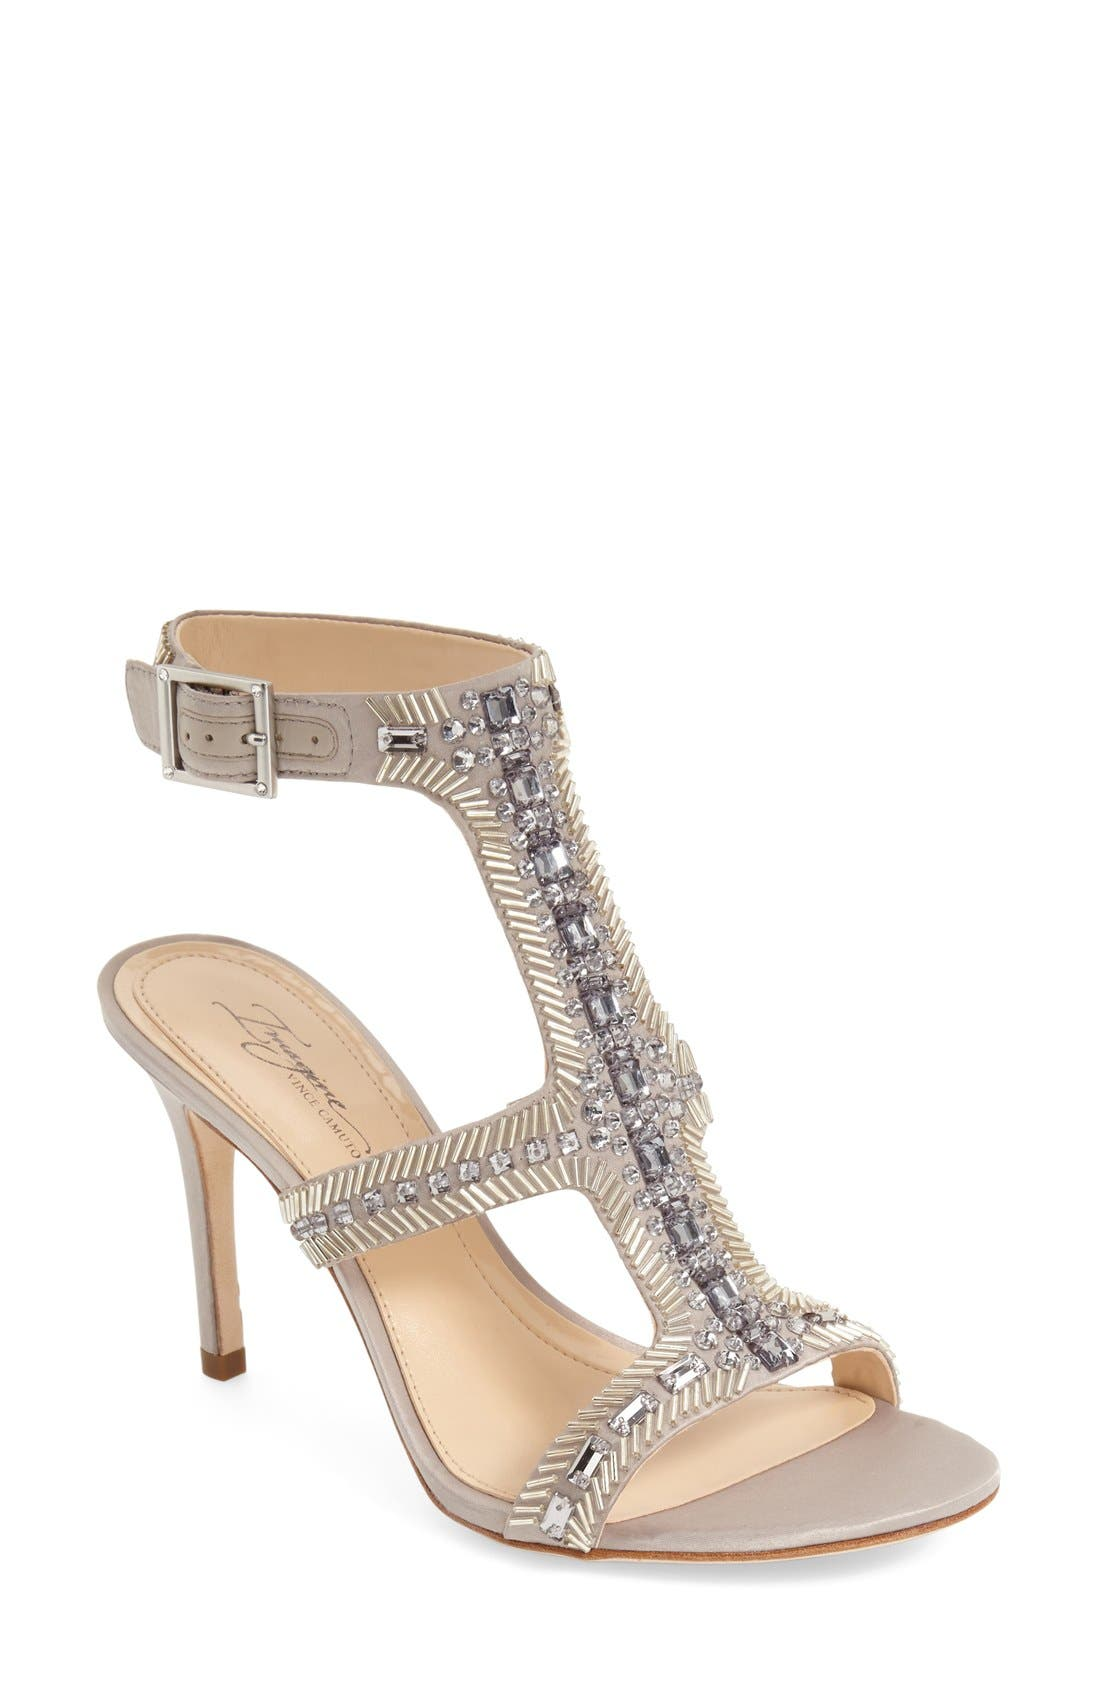 Imagine Vince Camuto 'Price' Beaded T-Strap Sandal,                         Main,                         color, Stone